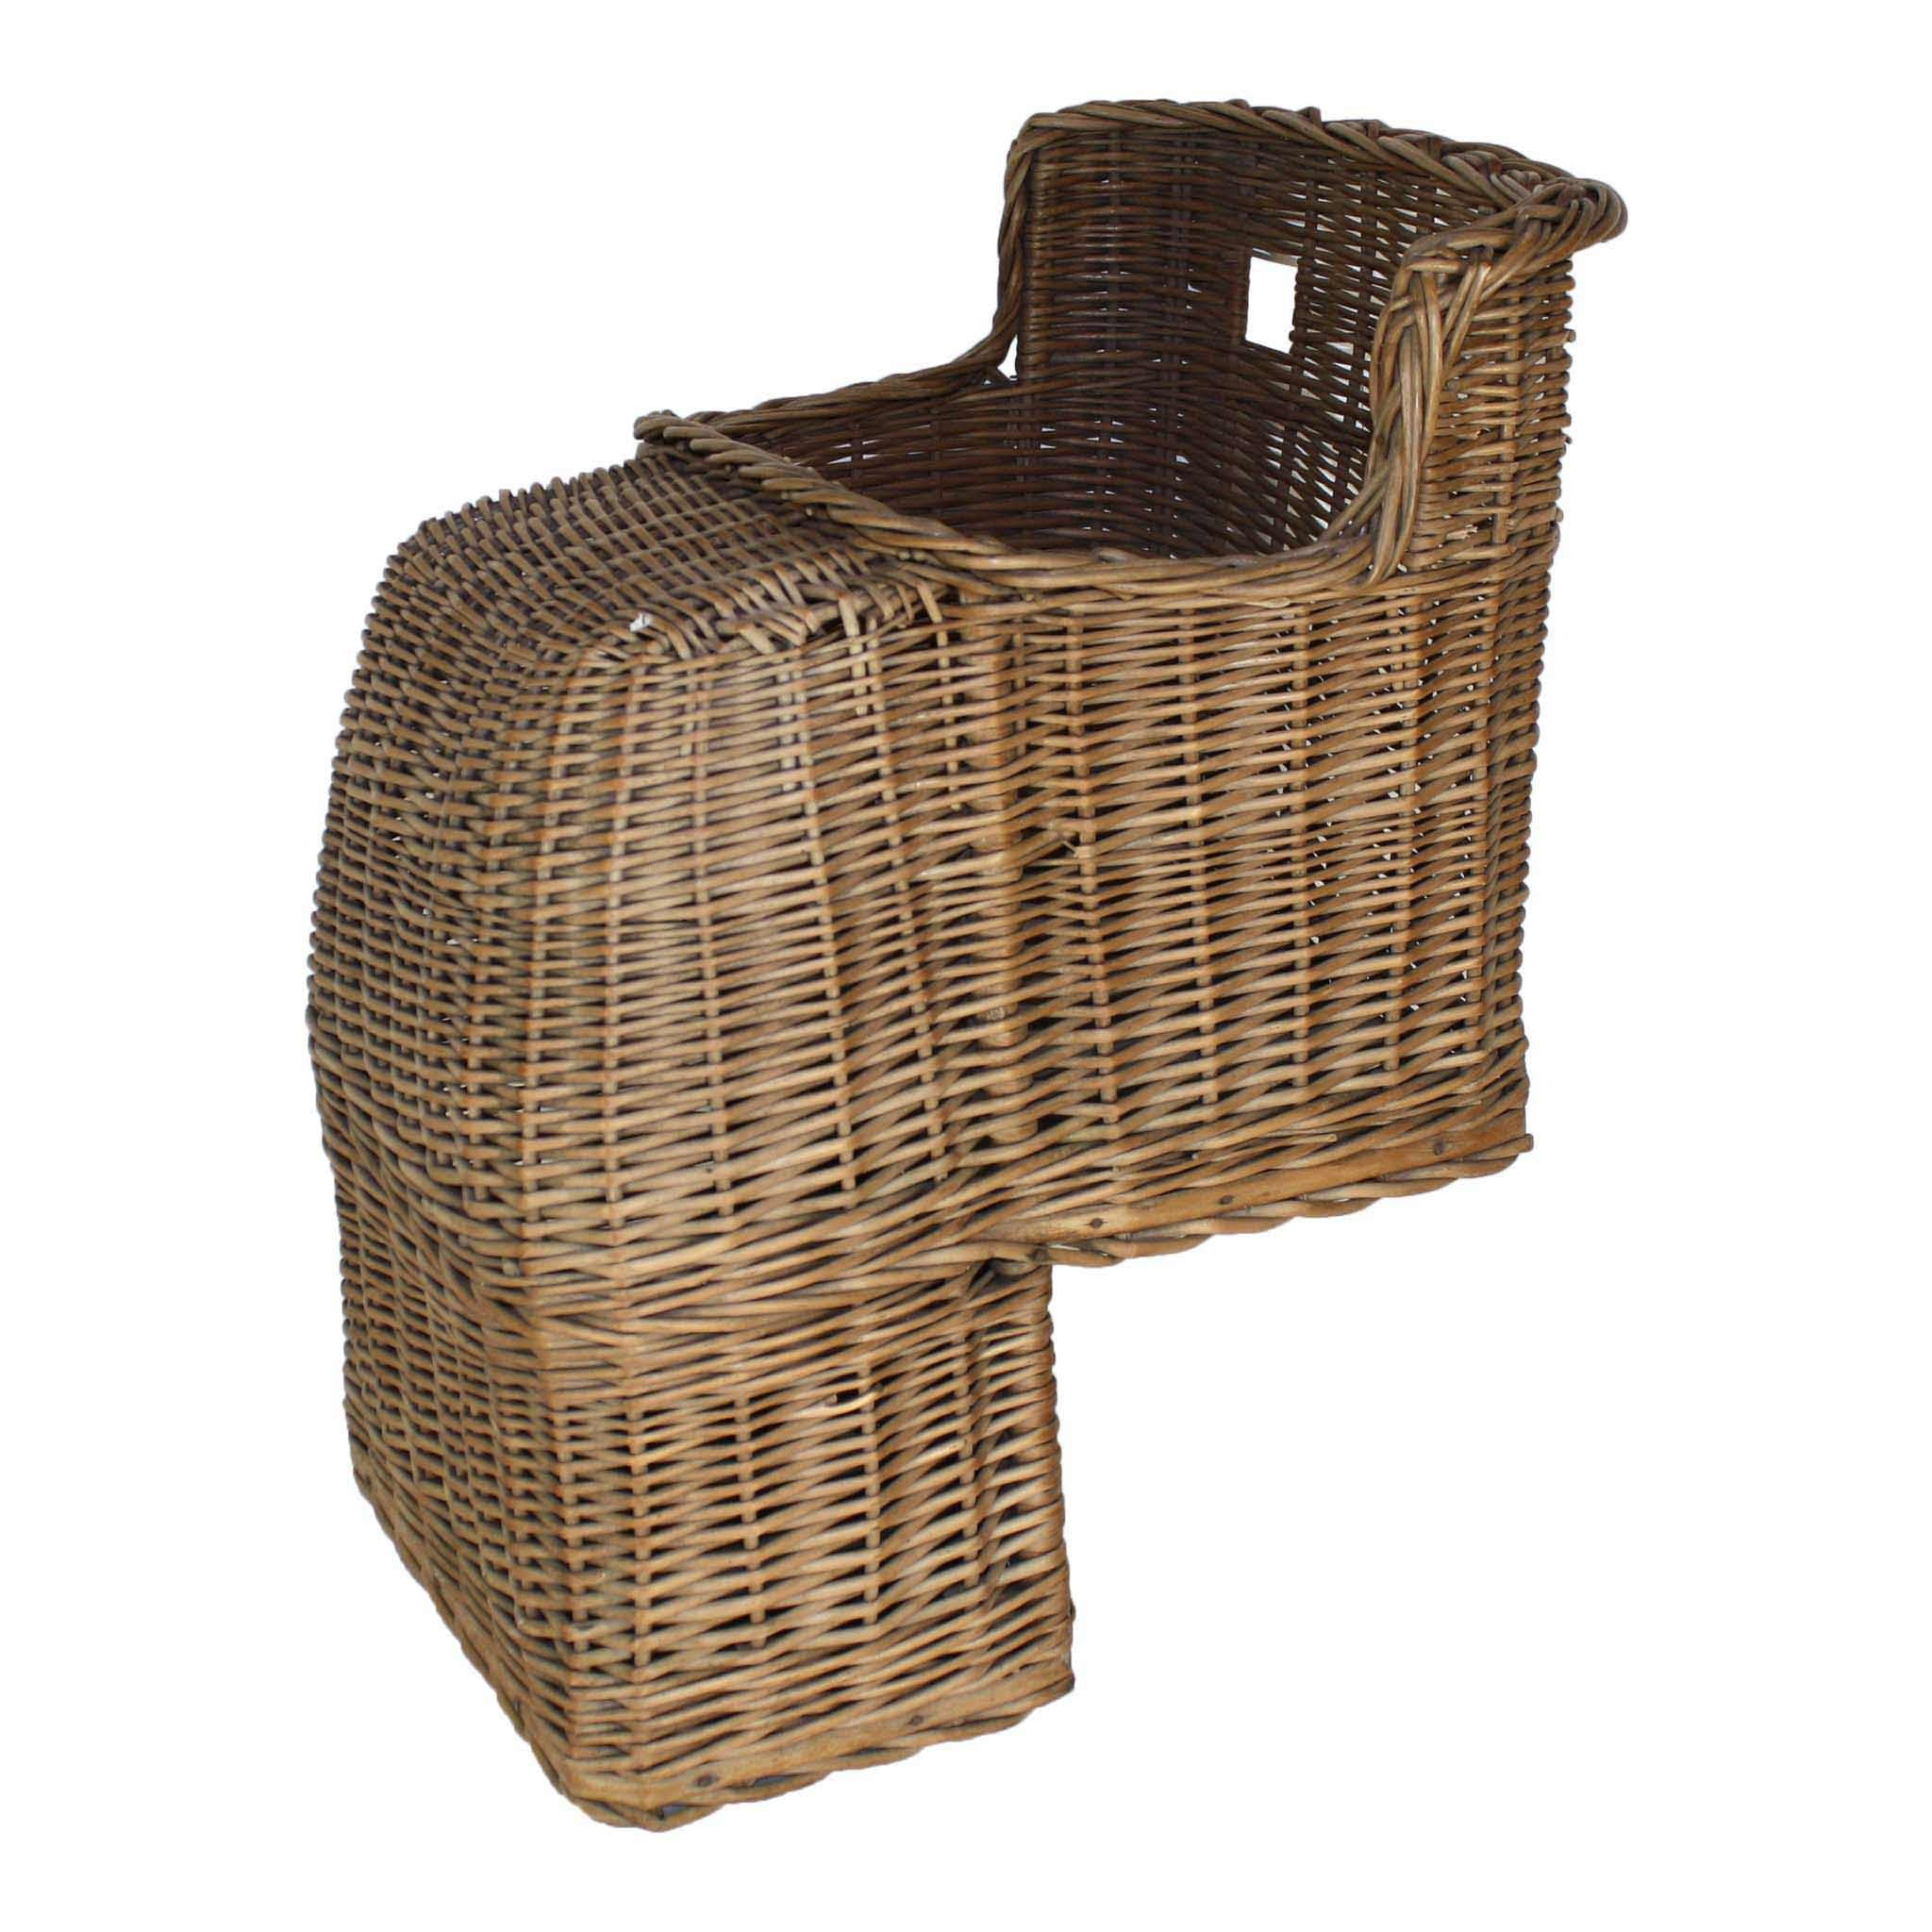 Wicker Bicycle Seat for Baby